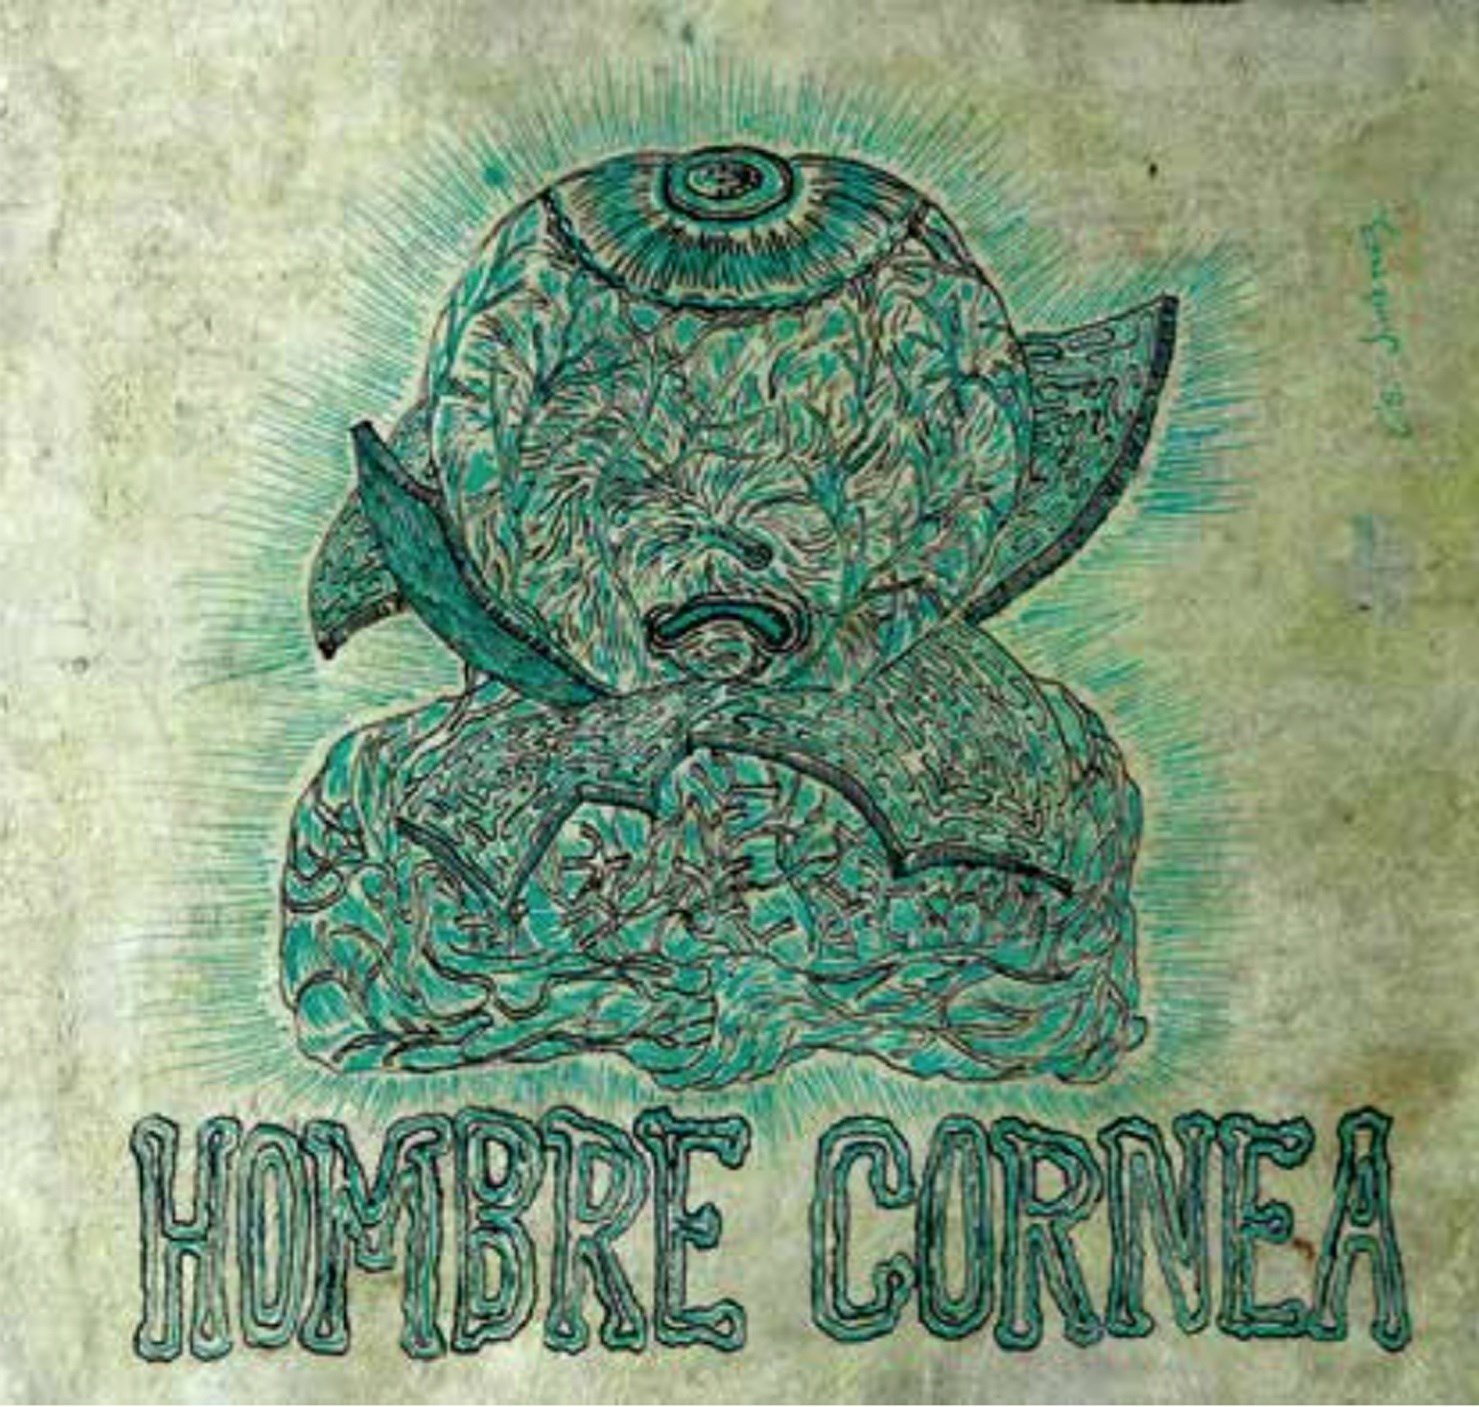 Hombre Córnea, original Abstract Collage Drawing and Illustration by Cisco Jiménez